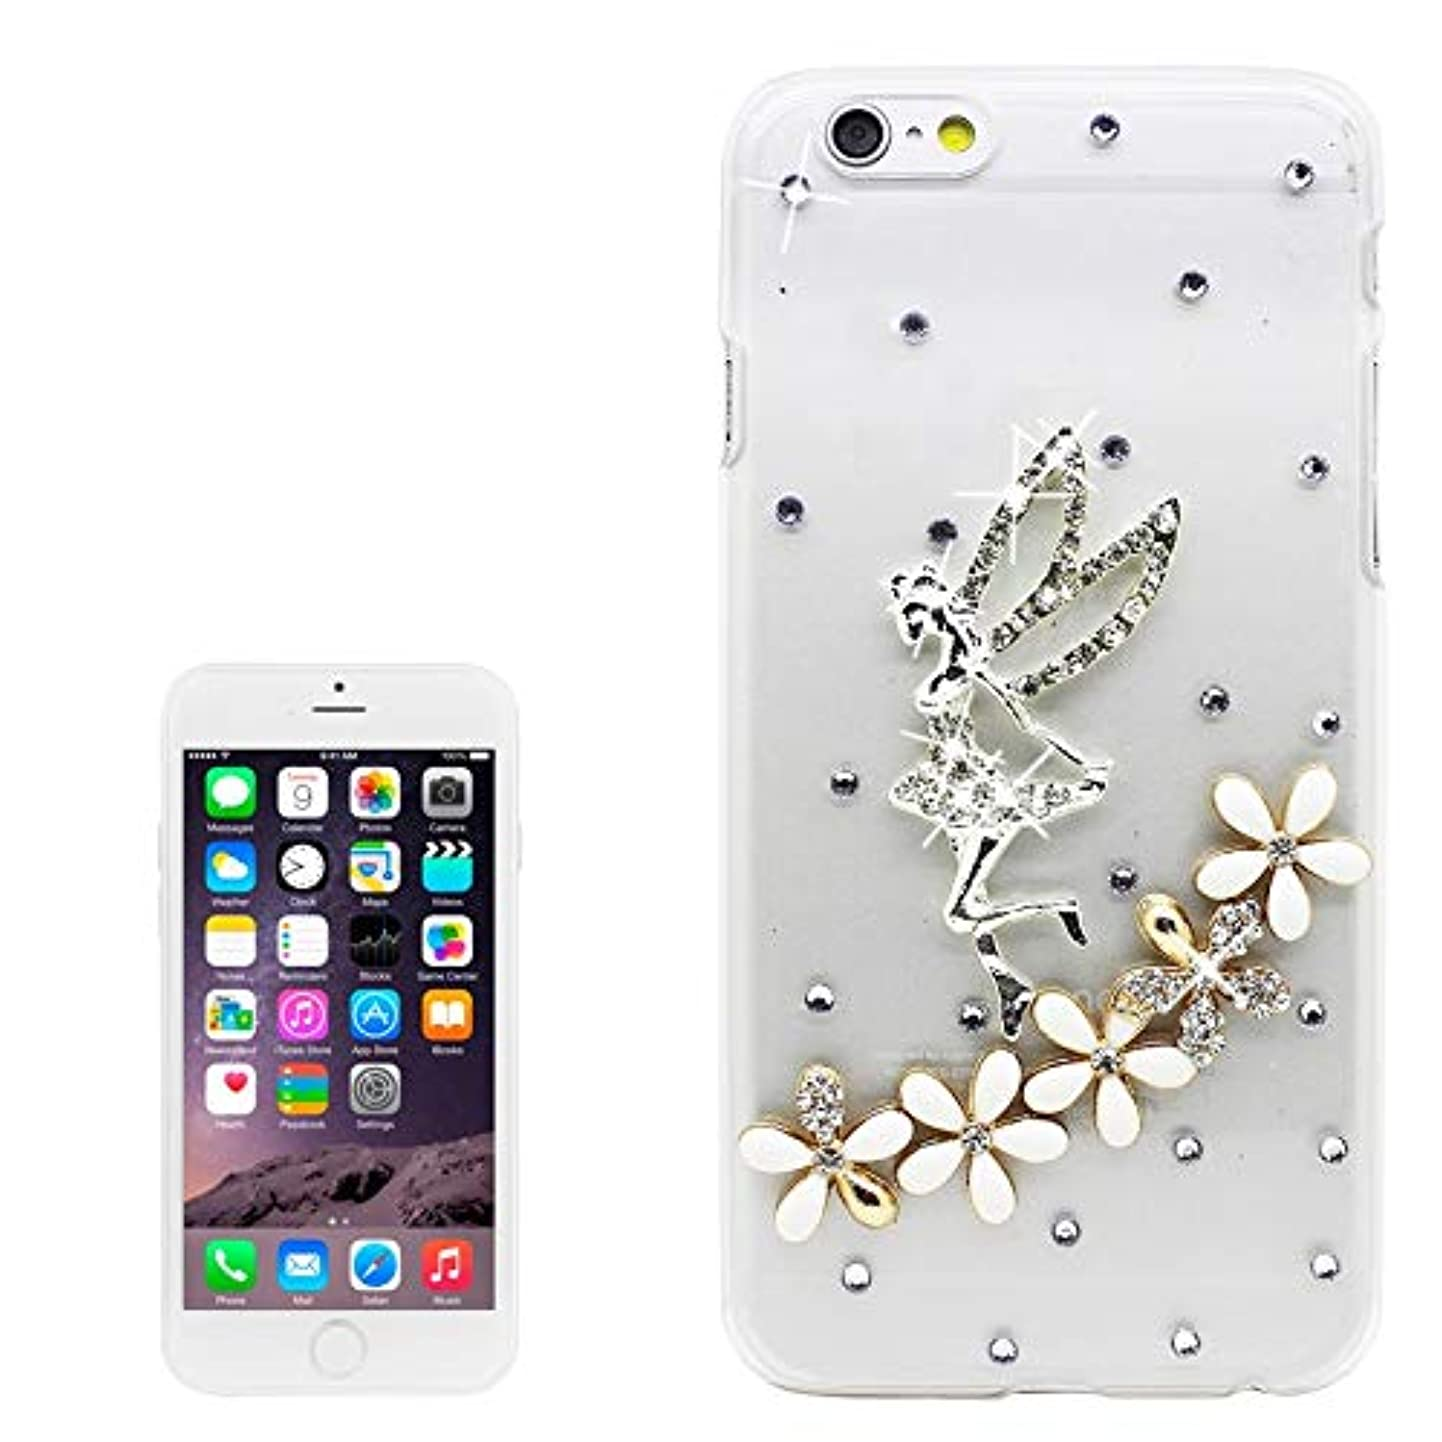 JHM Phone Case Guitar Pattern Diamond Encrusted Plastic Case for iPhone 6 for iPhone 6 / 6s (Color : Color3) jdigtgxjuku6